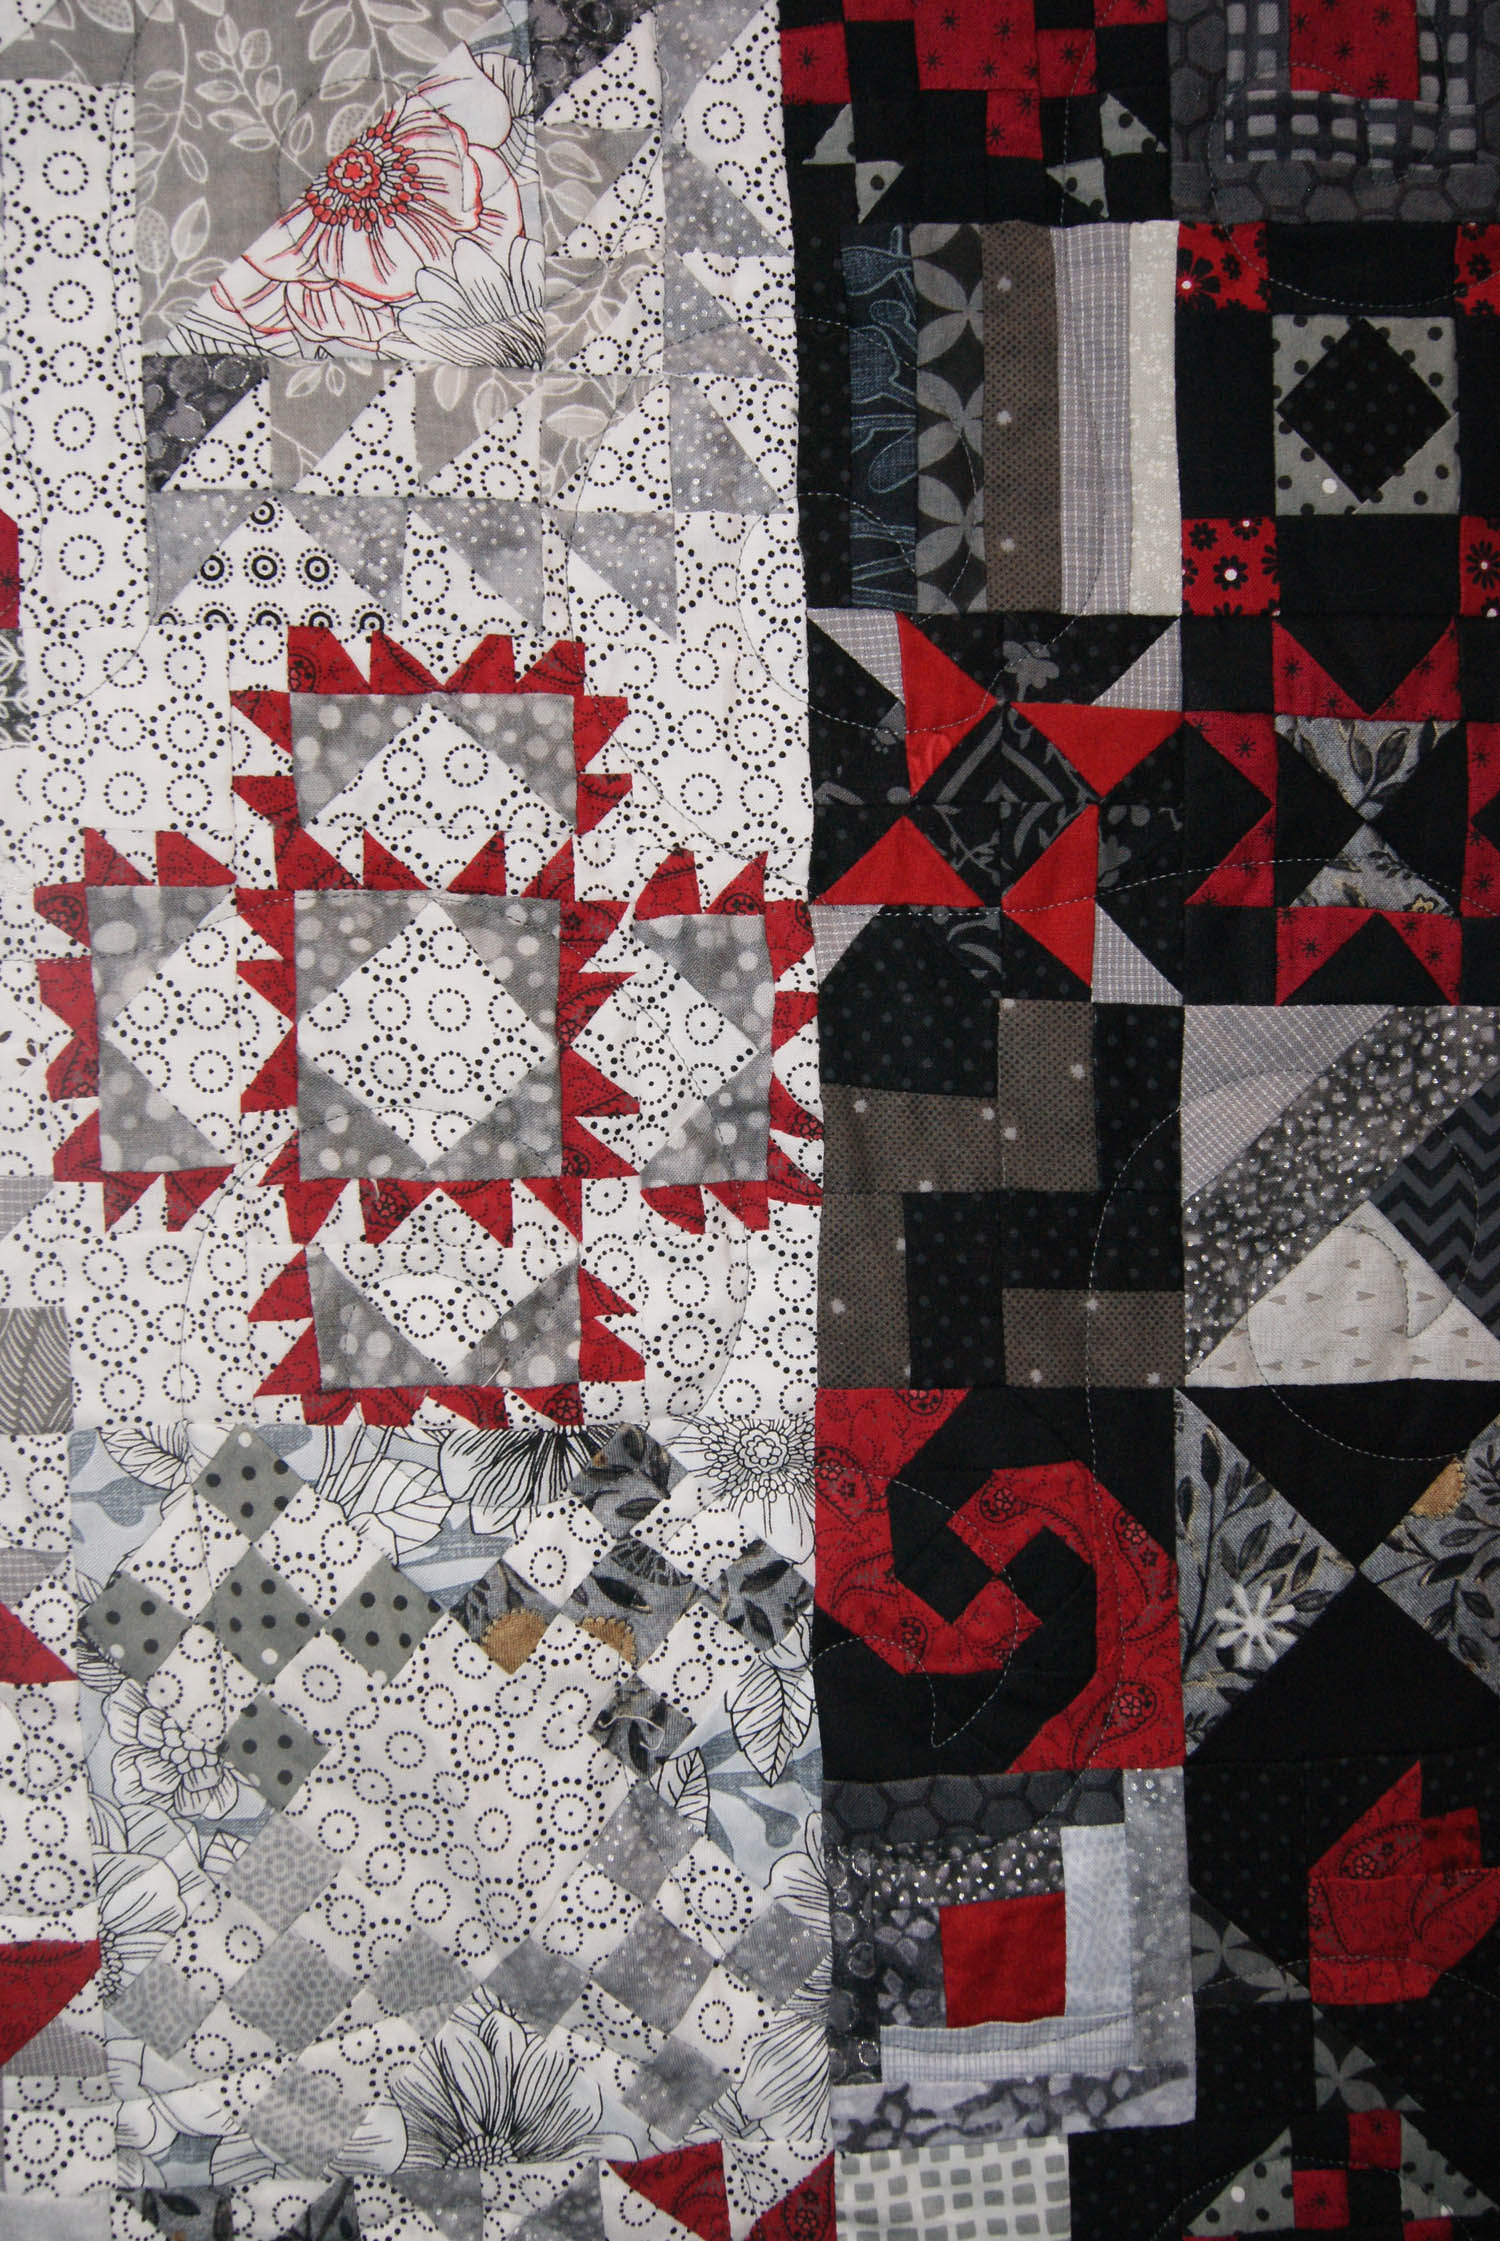 Local Quilt Show-Part 3 – Stitching Impressions : local quilt shows - Adamdwight.com